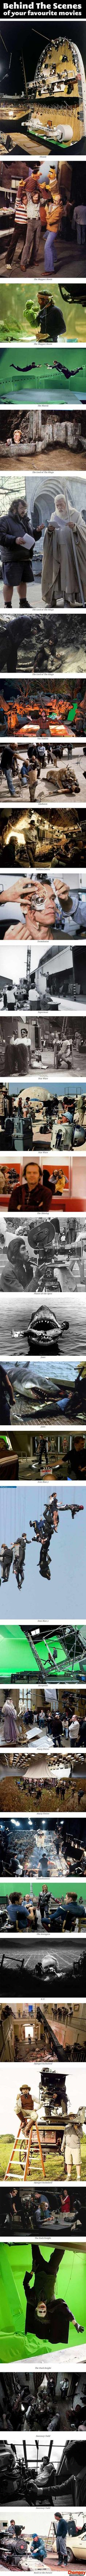 behind the scences to your favorite movies